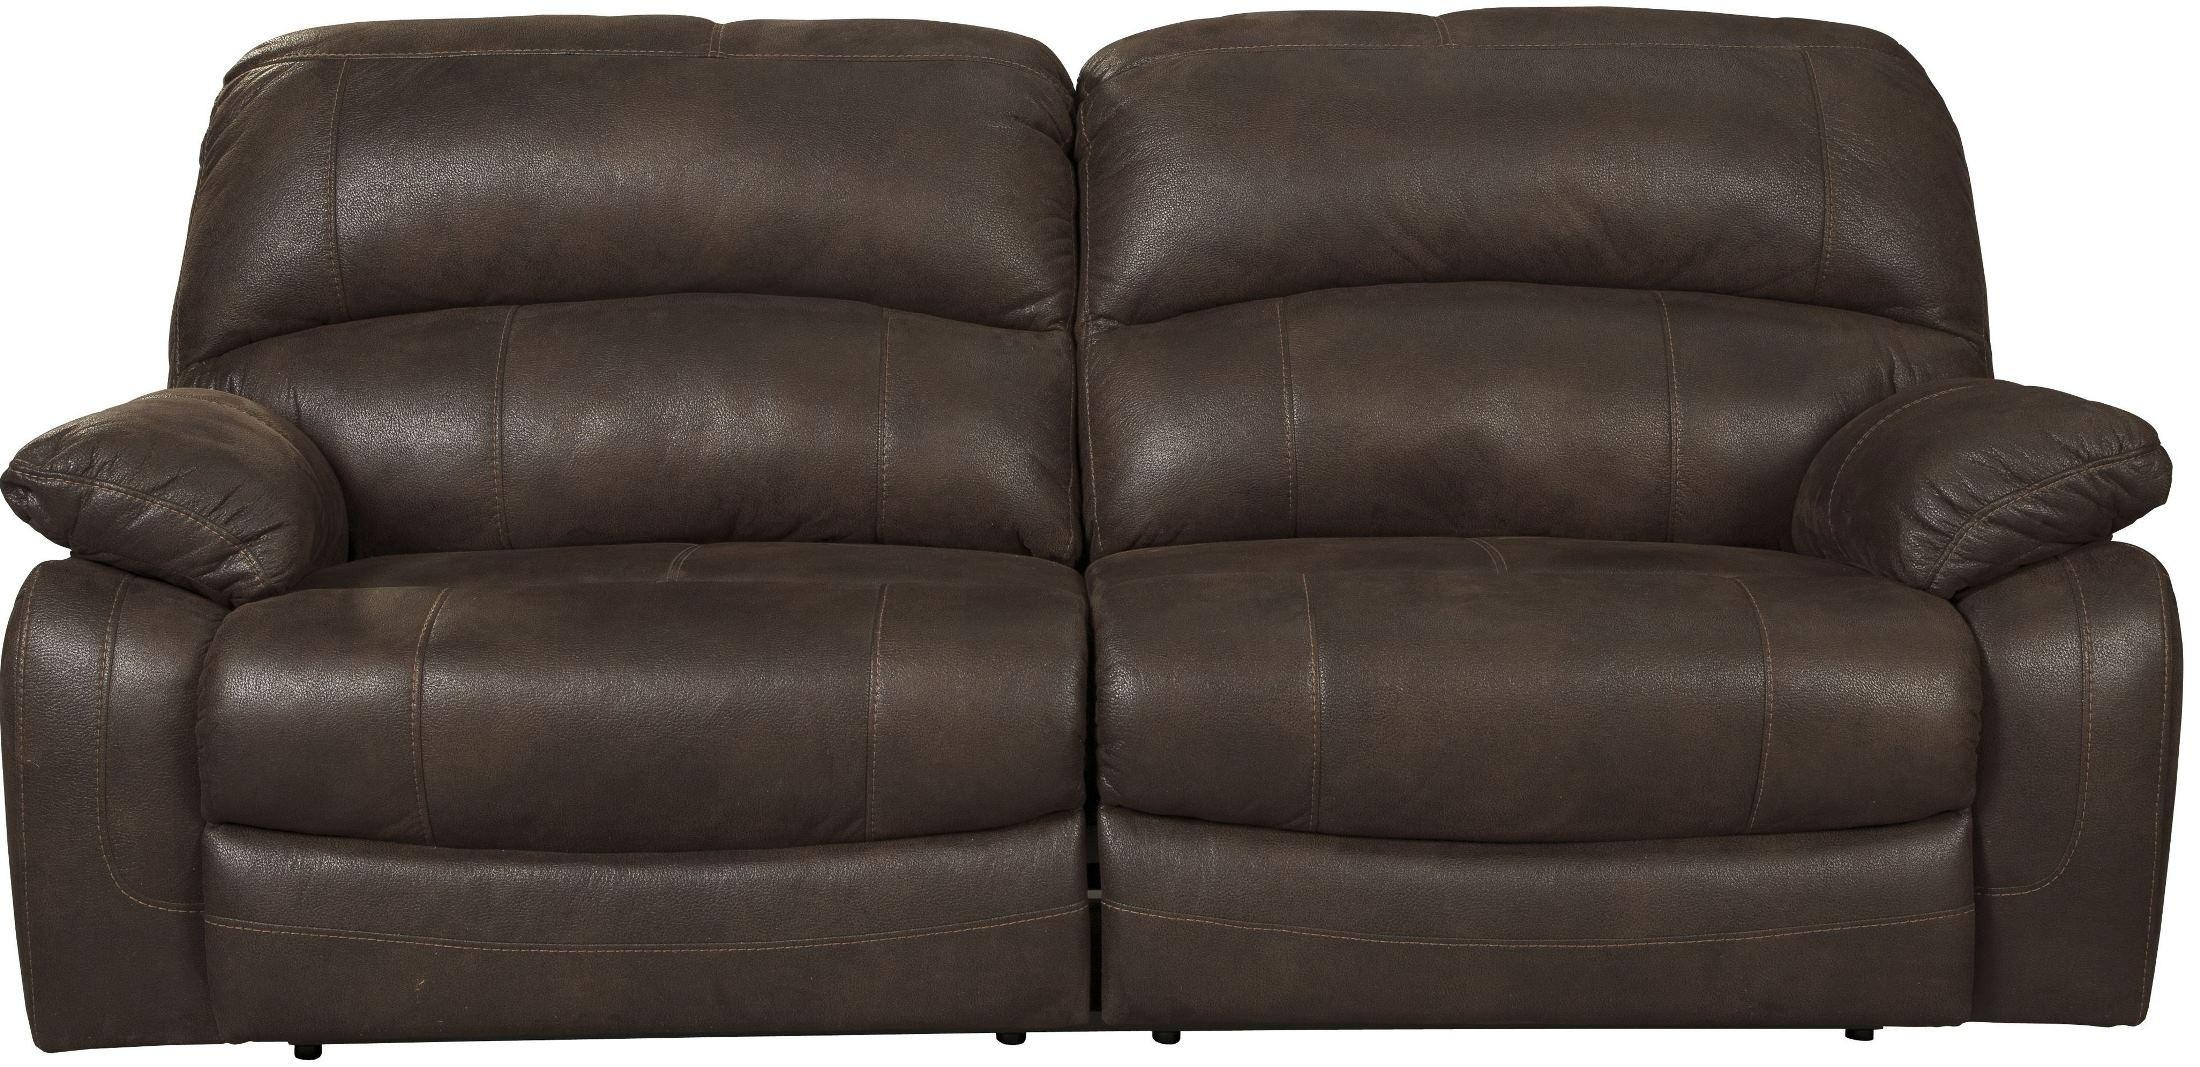 Zavier Truffle 2 Seat Power Reclining Sofa From Ashley (4290147 With 2 Seat Recliner Sofas (Photo 8 of 20)